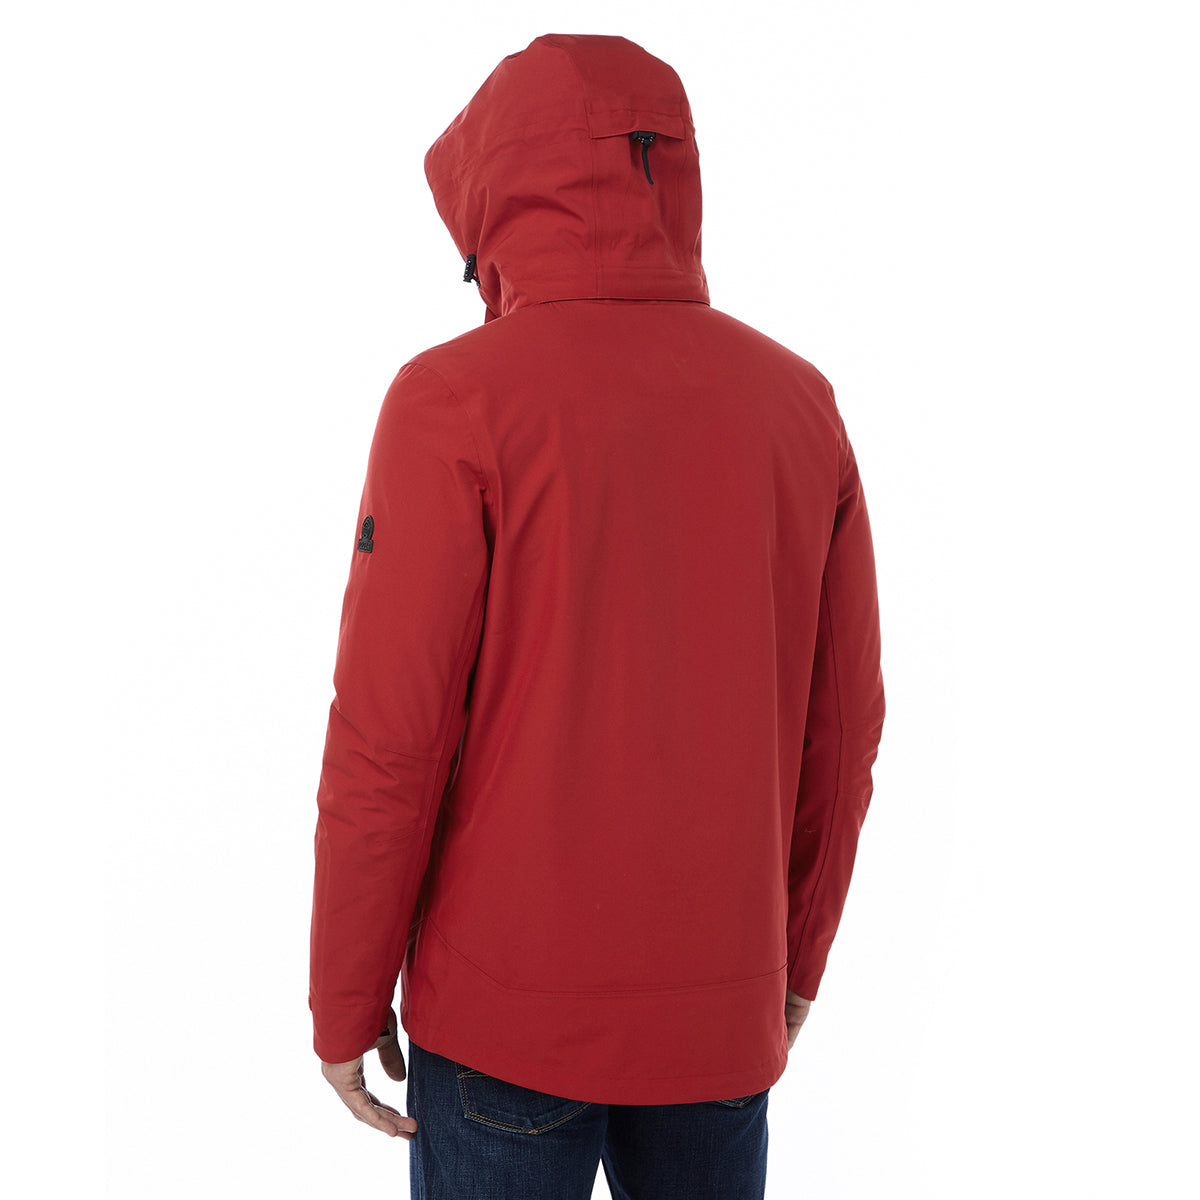 Strike Mens Milatex 3-In-1 Jacket - Chilli Red image 4